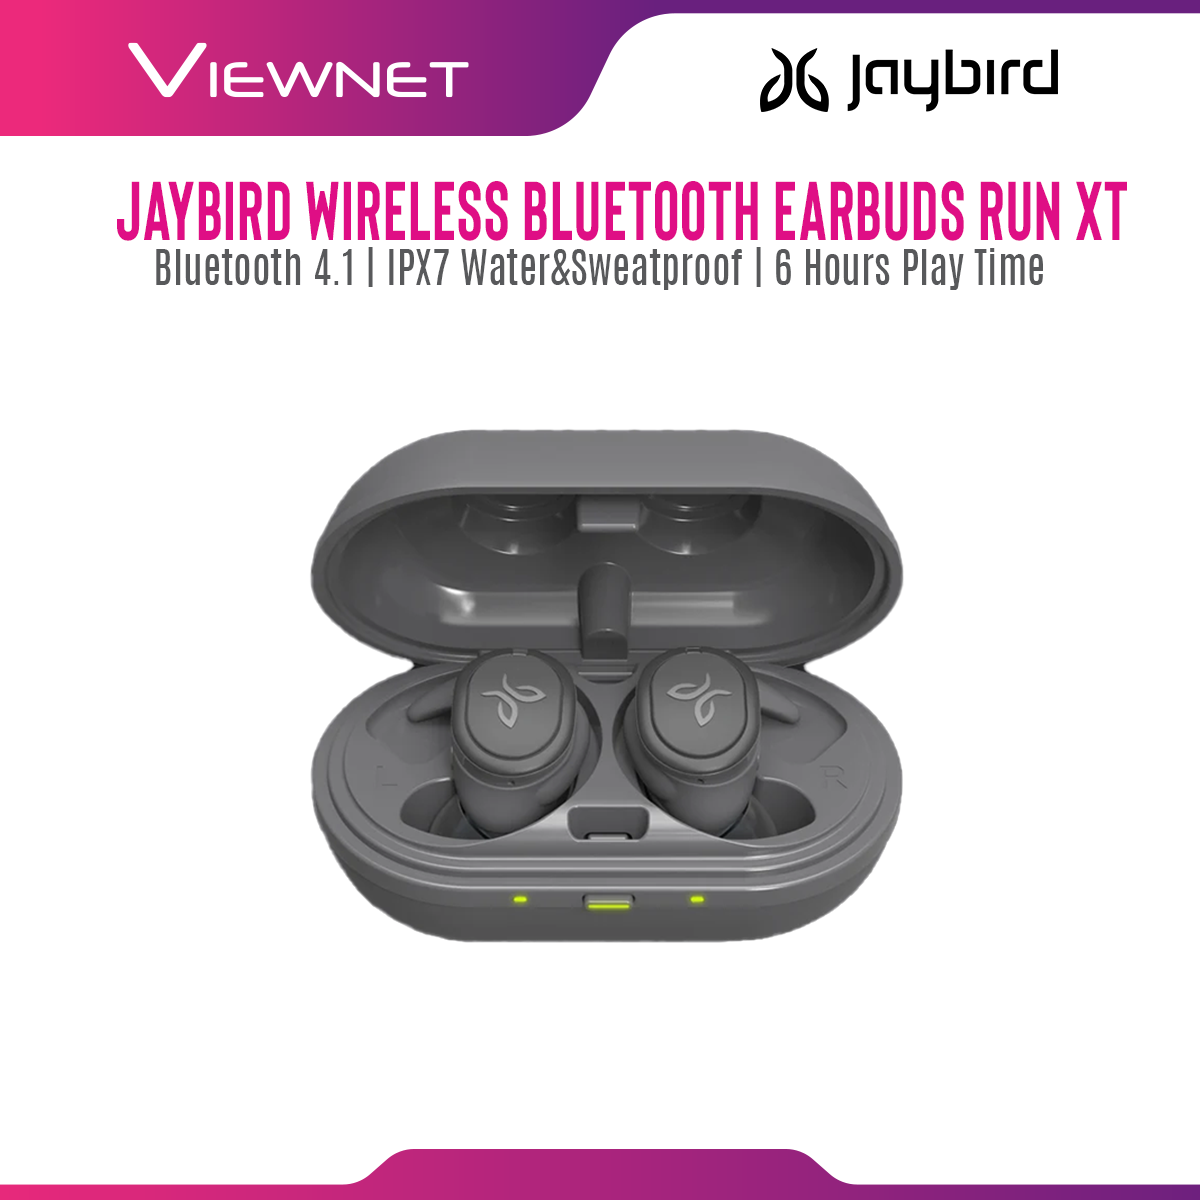 Jaybird RUN XT True Wireless Earbuds, 12 hours Battery Life with Charging Case, IPX7 Waterproof & Sweatproof, Sport Fit, Premium Sound with Custom EQ, Music and Calls